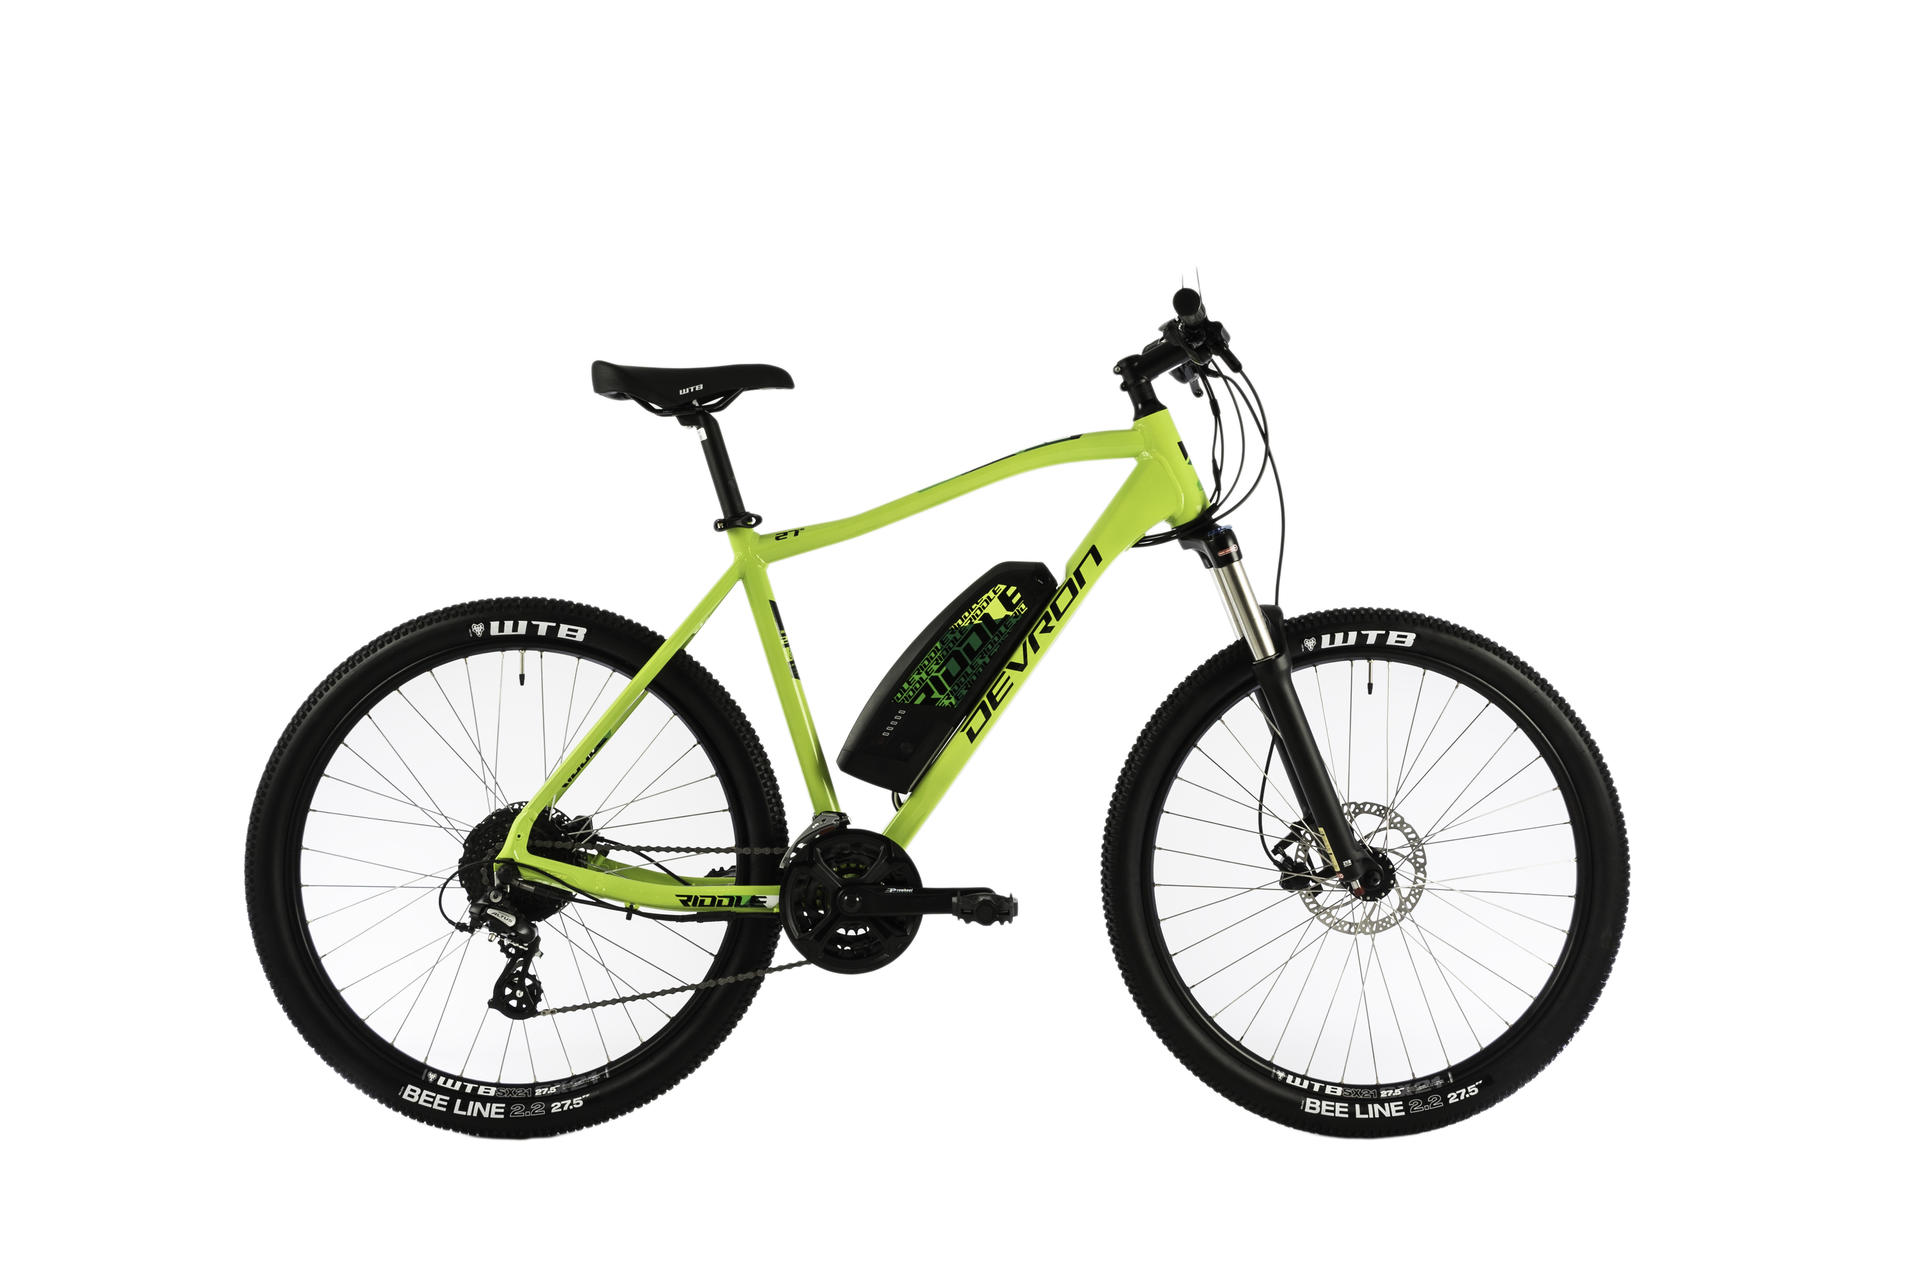 Mountain bike elettrica Devron Riddle M1.7 495mm Neon  - 27